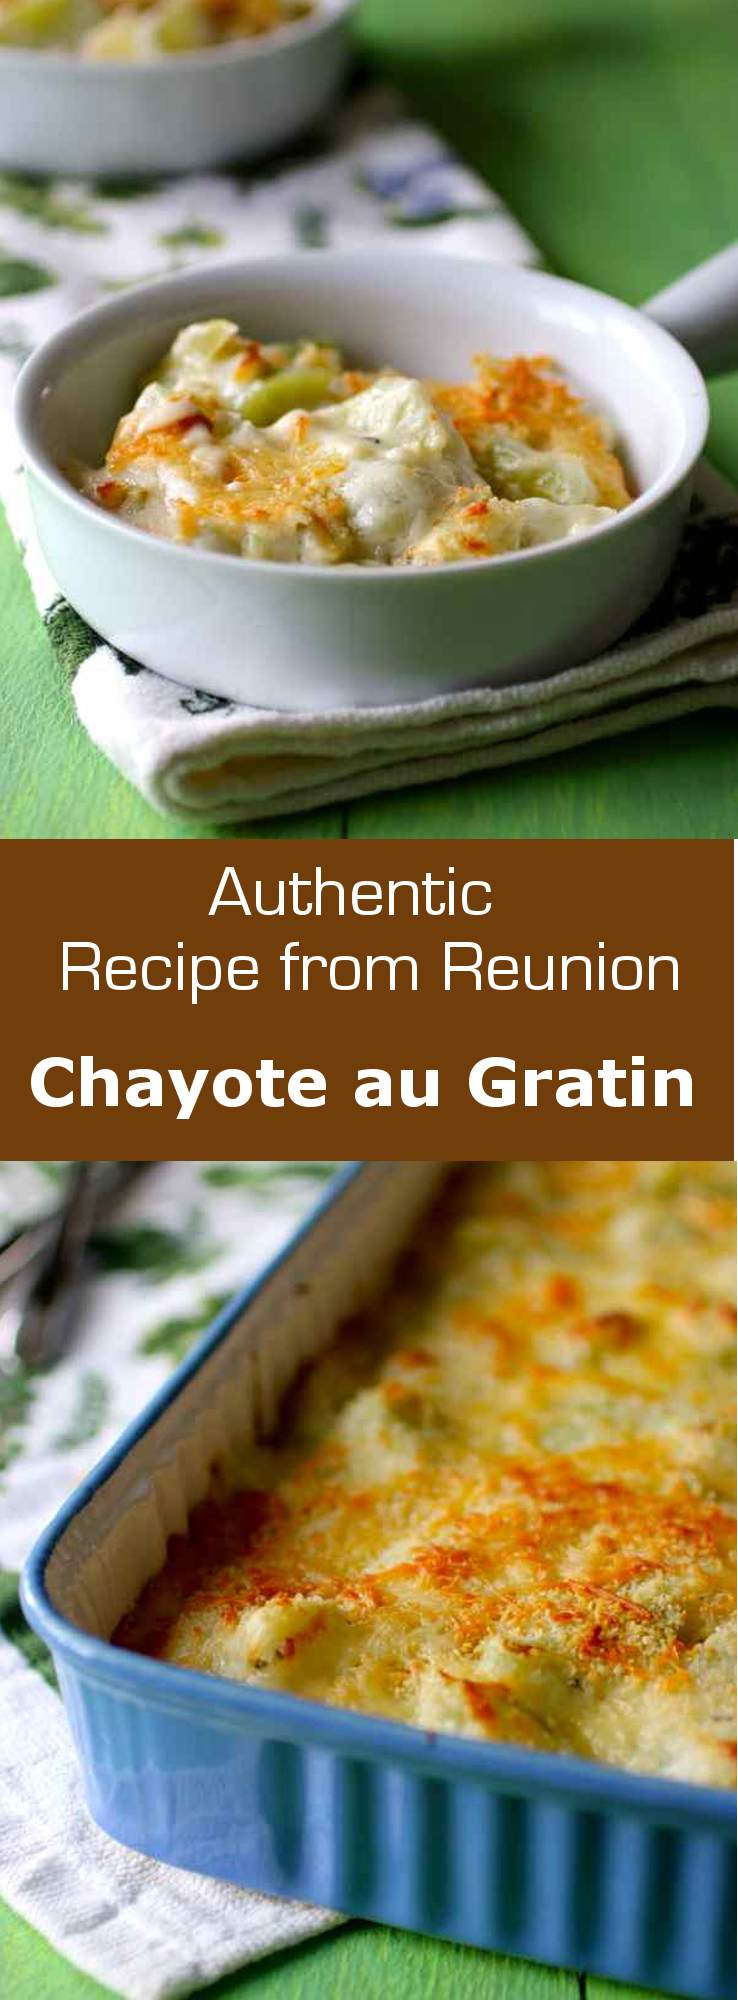 Chayote au gratin (gratin de chouchou) is a traditional dish from Reunion which consists of oven-baked chayotes with béchamel sauce and cheese. #reunion #westindies #caribbean #france #dairy